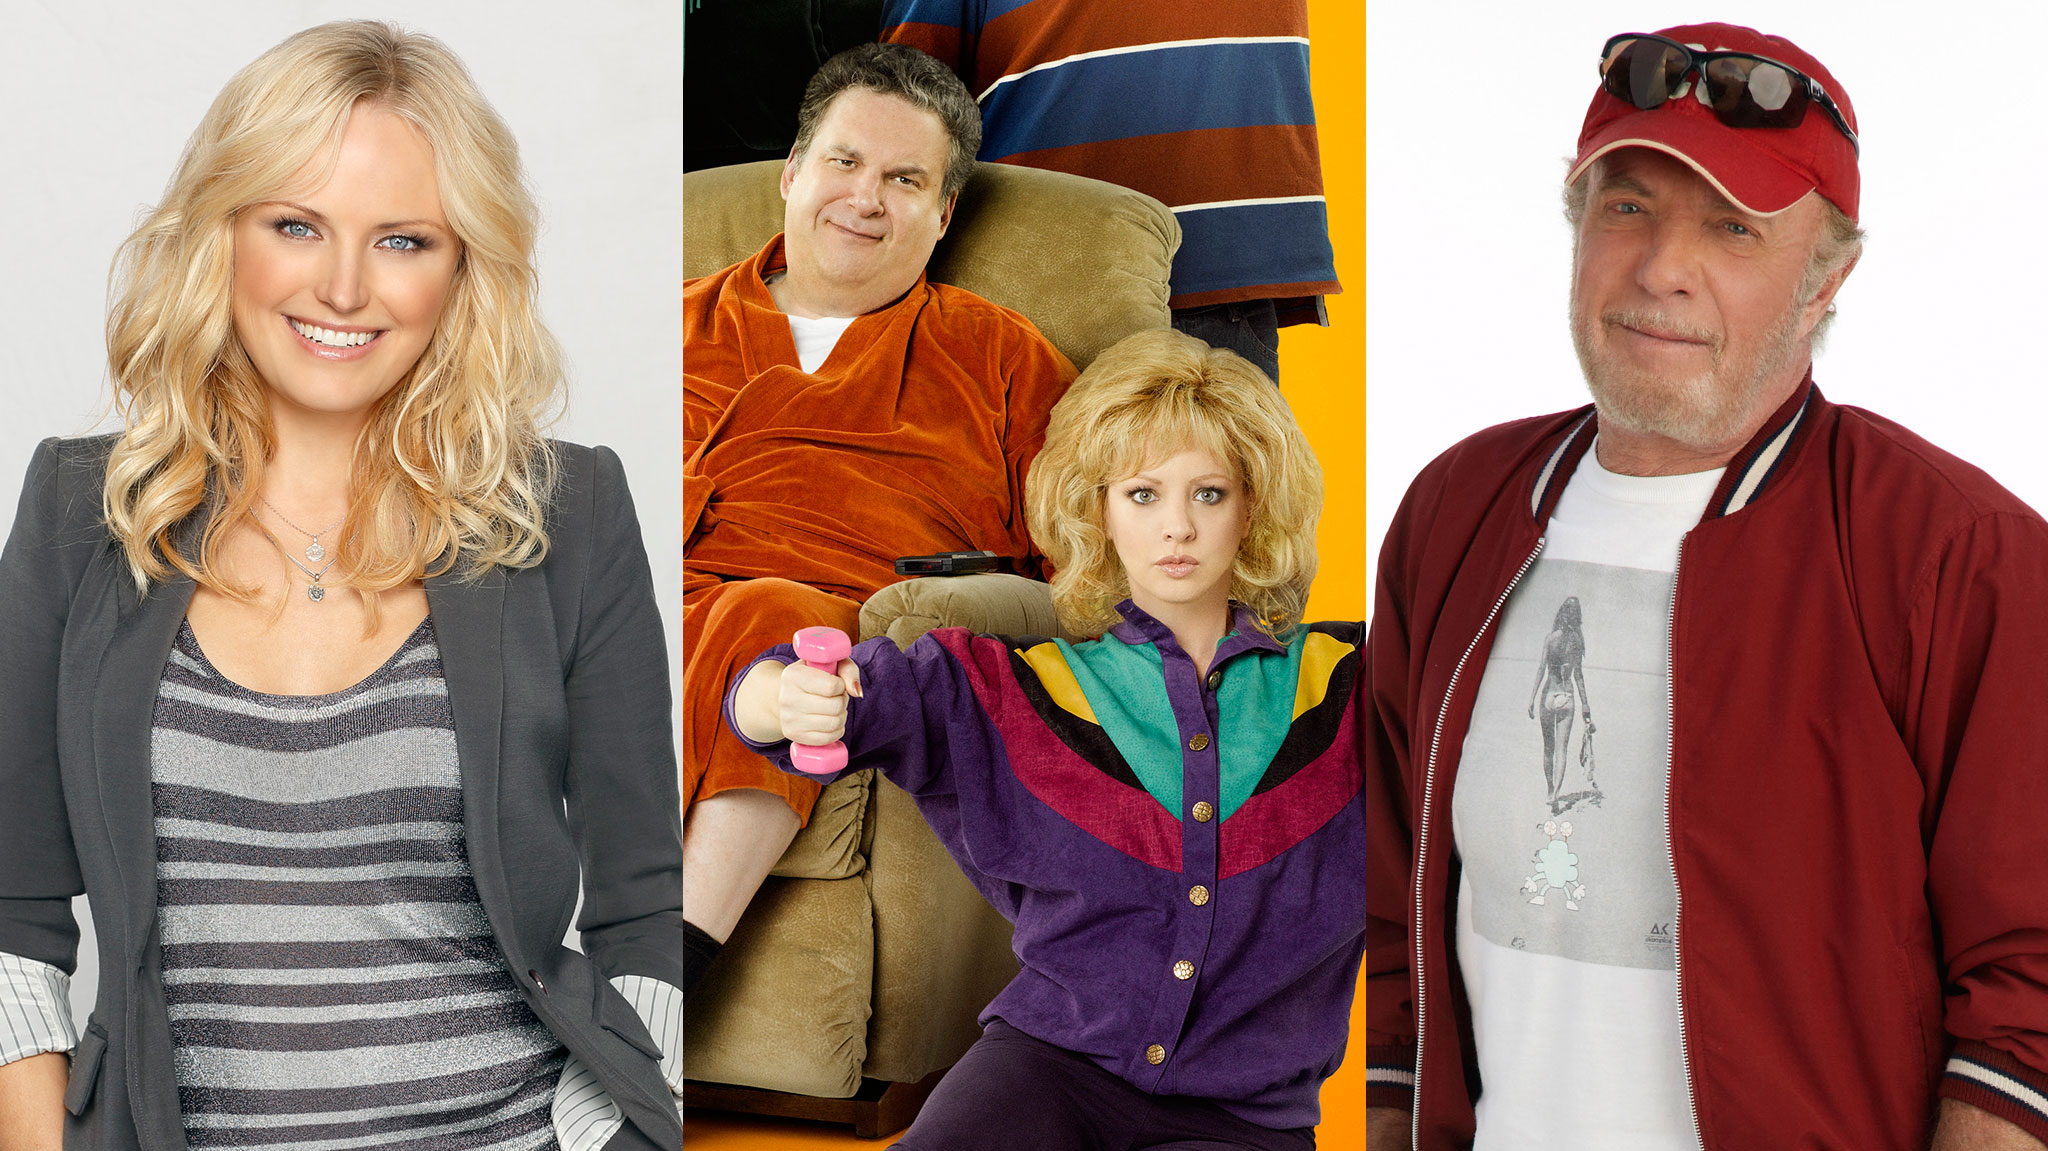 Pretty Face Malin Akerman, 'Bridesmaids' and 'Curb' Vets, and the Return of Caan Bring the Funny to ABC This Fall